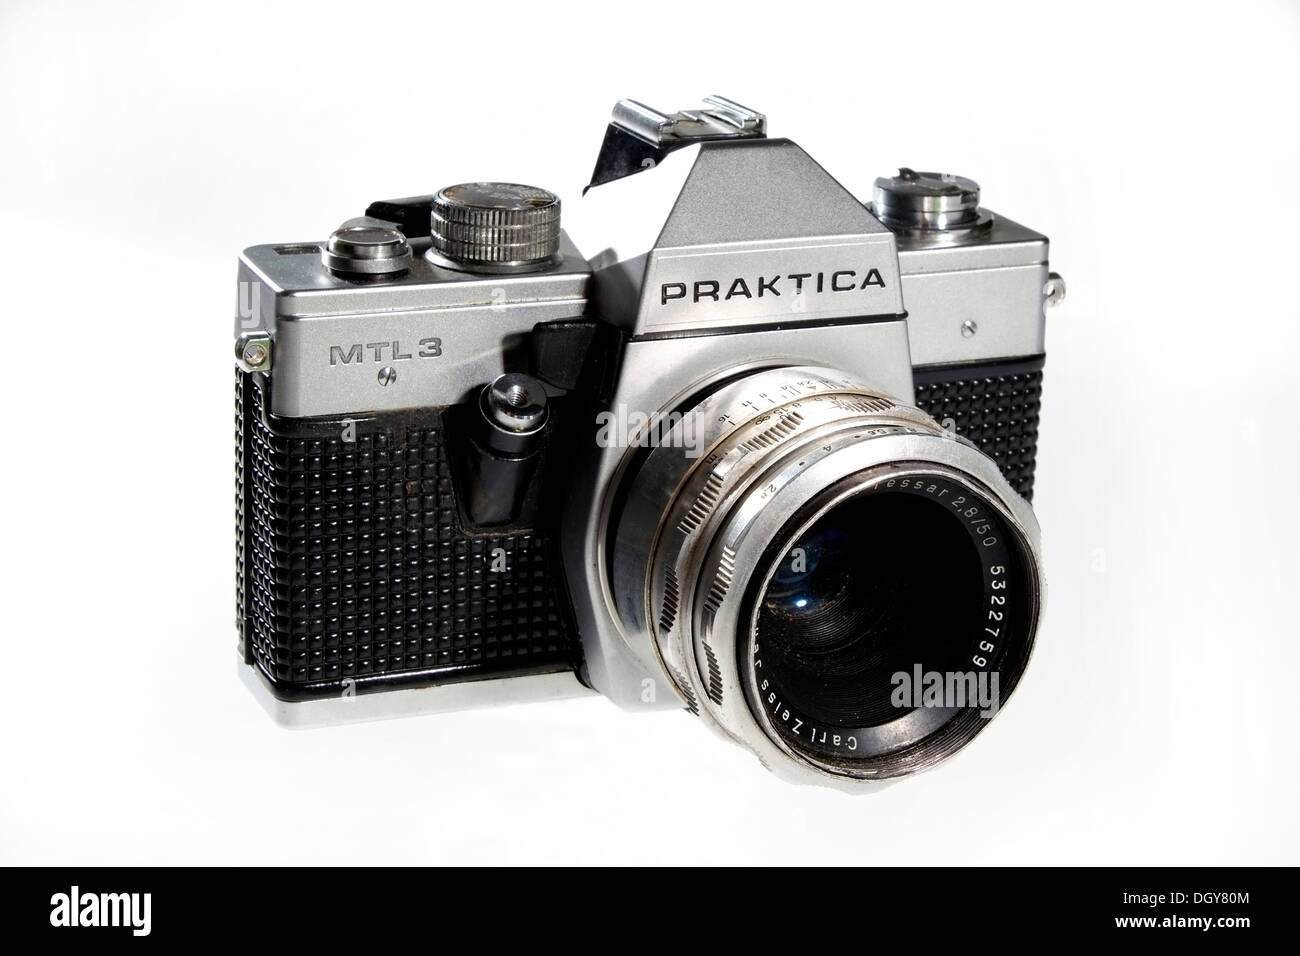 Praktica MTL 3, 35mm single-lens reflex camera, SLR, GDR - Stock Image